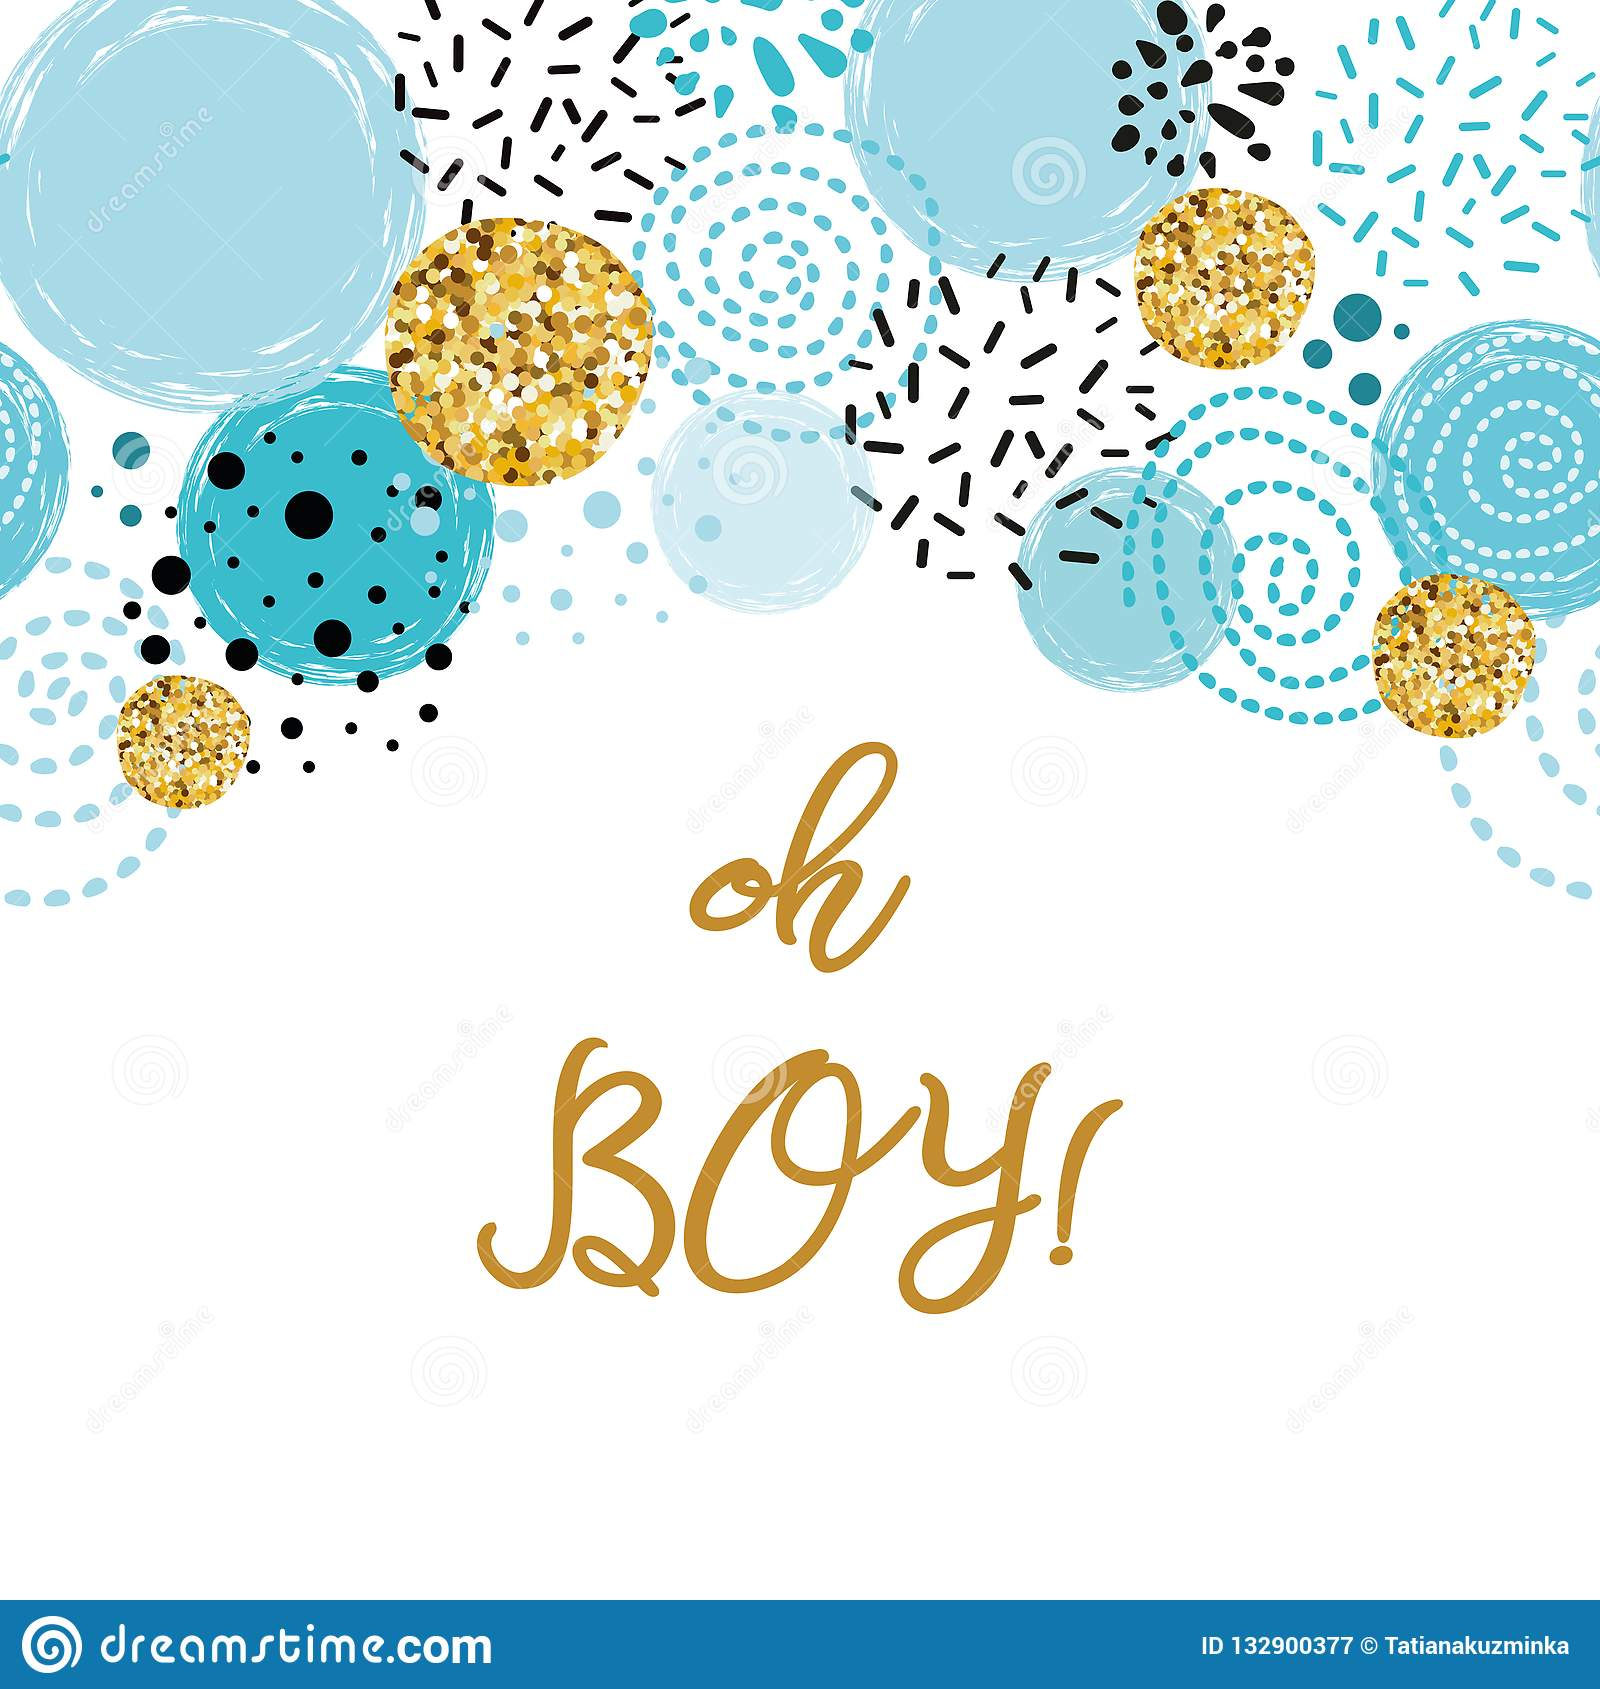 https www dreamstime com oh boy cute baby shower blue gold round elements boy birthday invitation abstract border phrase oh boy cute baby shower image132900377